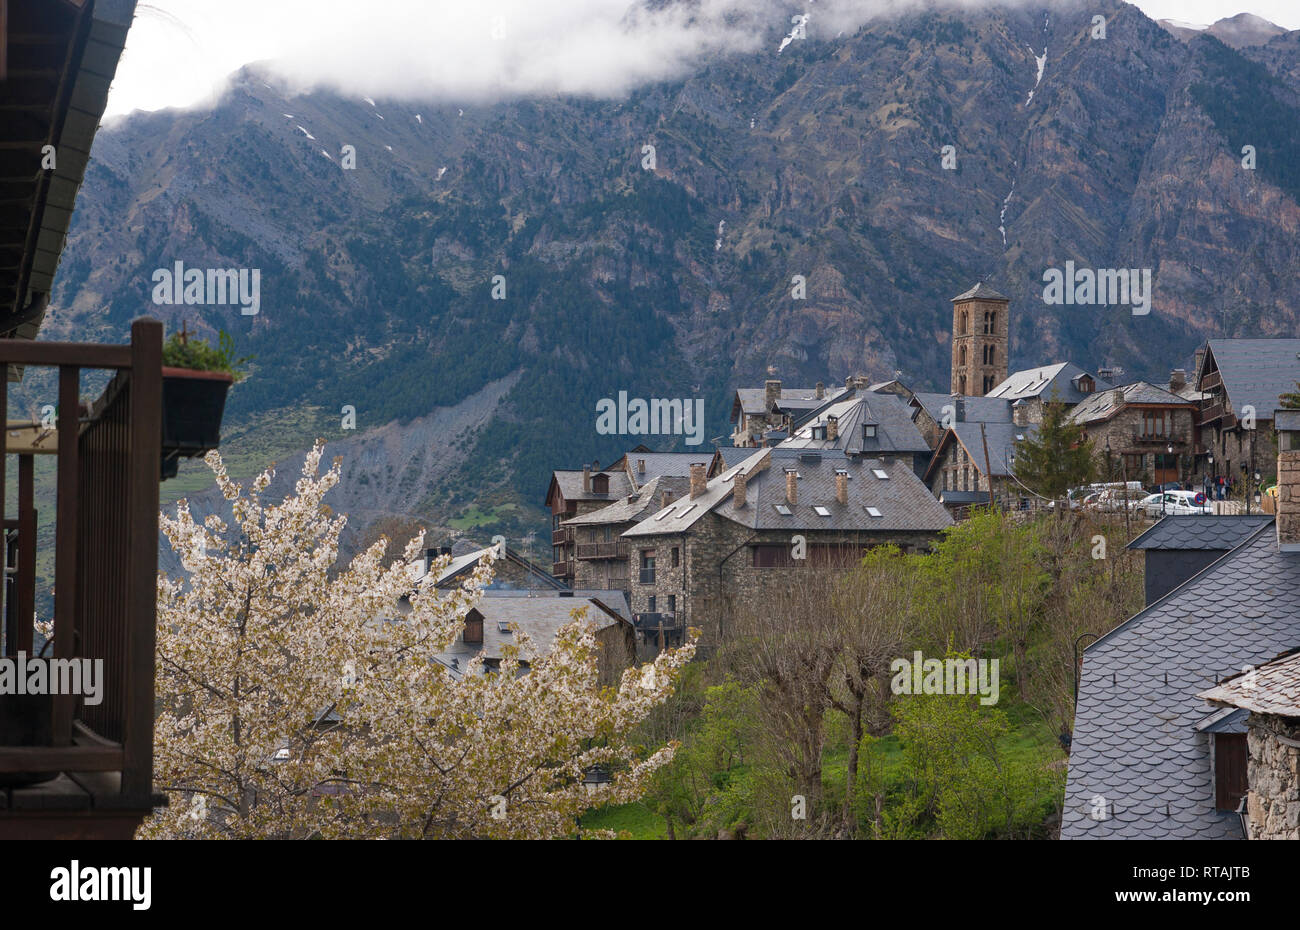 Views of Taull. Catalan Romanesque Church of Saint Climent in Taull, Vall de Boi, Catalonia, Spain - Stock Image